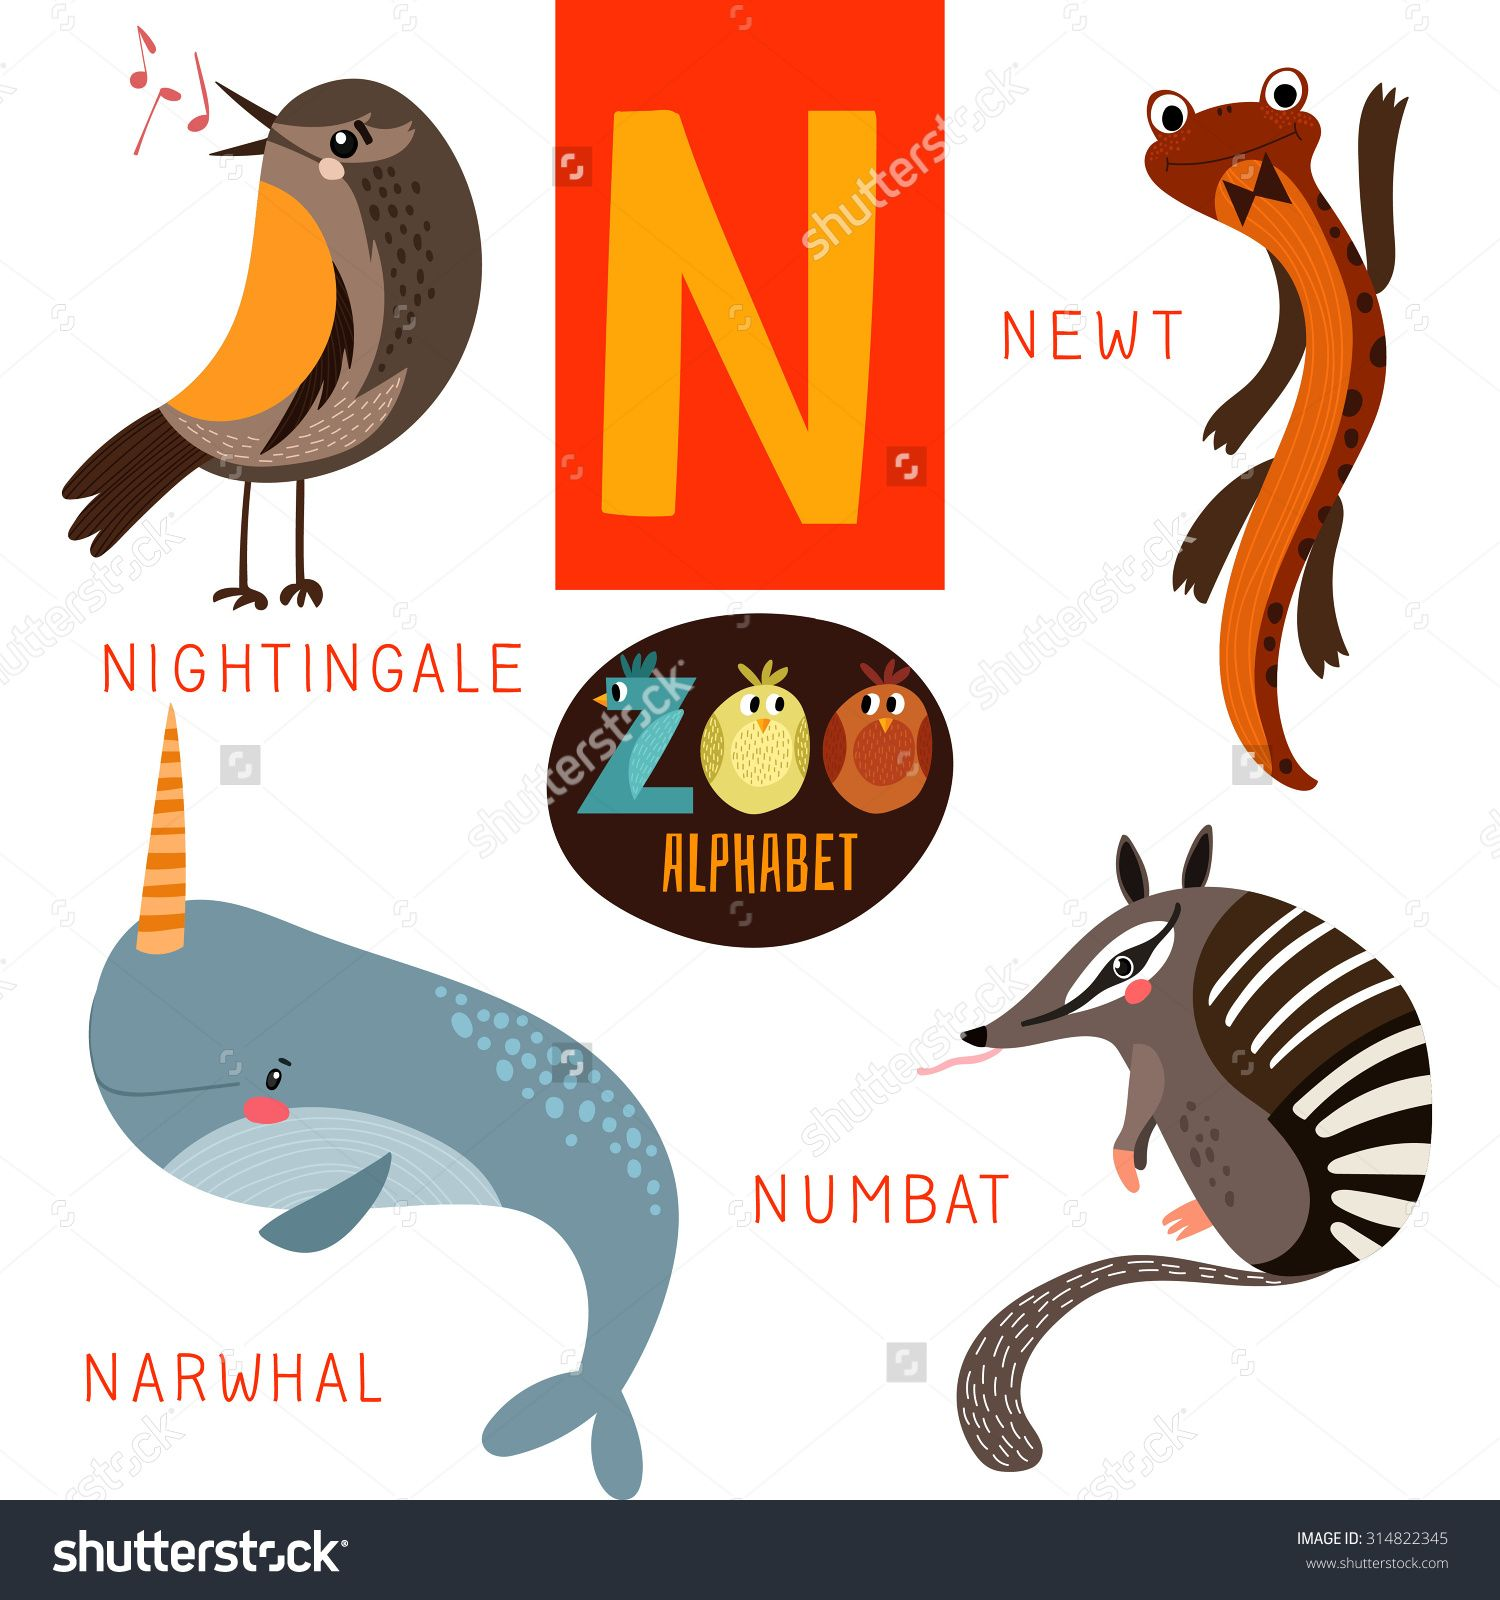 Is There An Animal That Starts With The Letter N